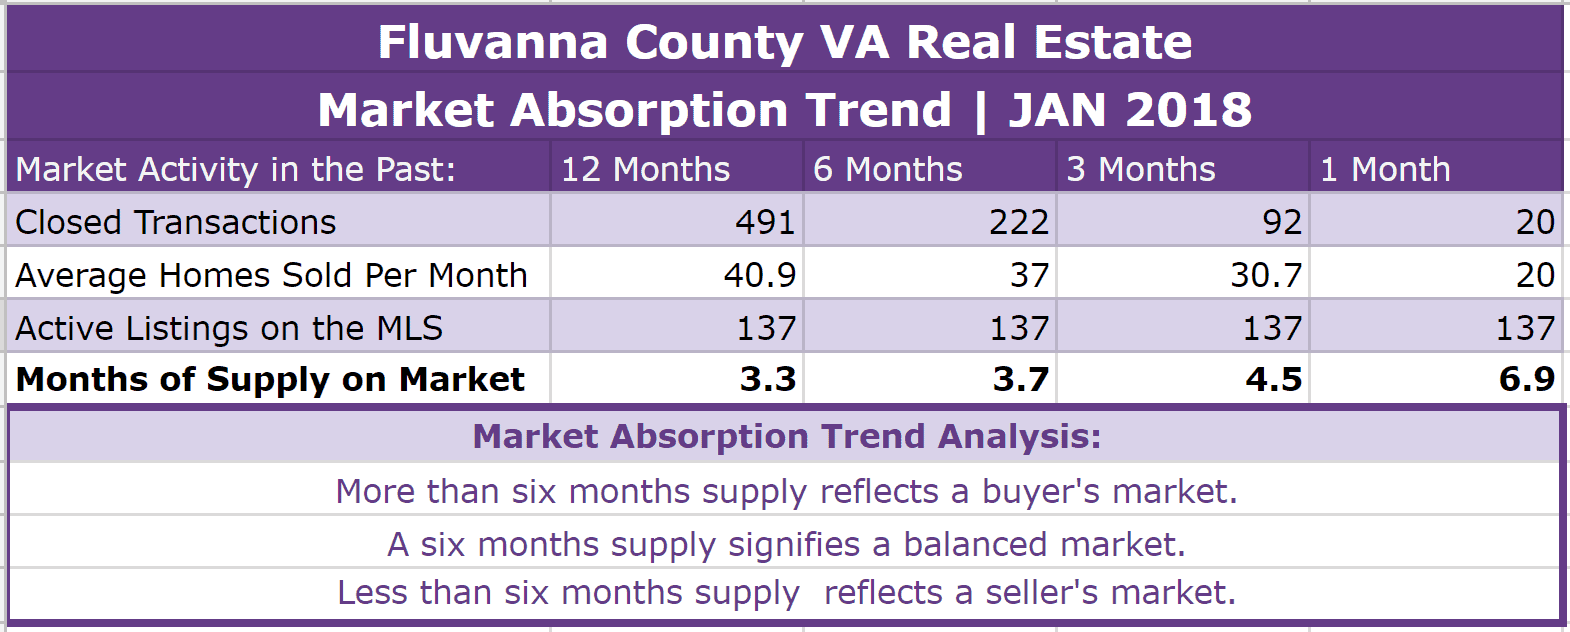 Fluvanna County Real Estate Absorption Trend - JAN 2018